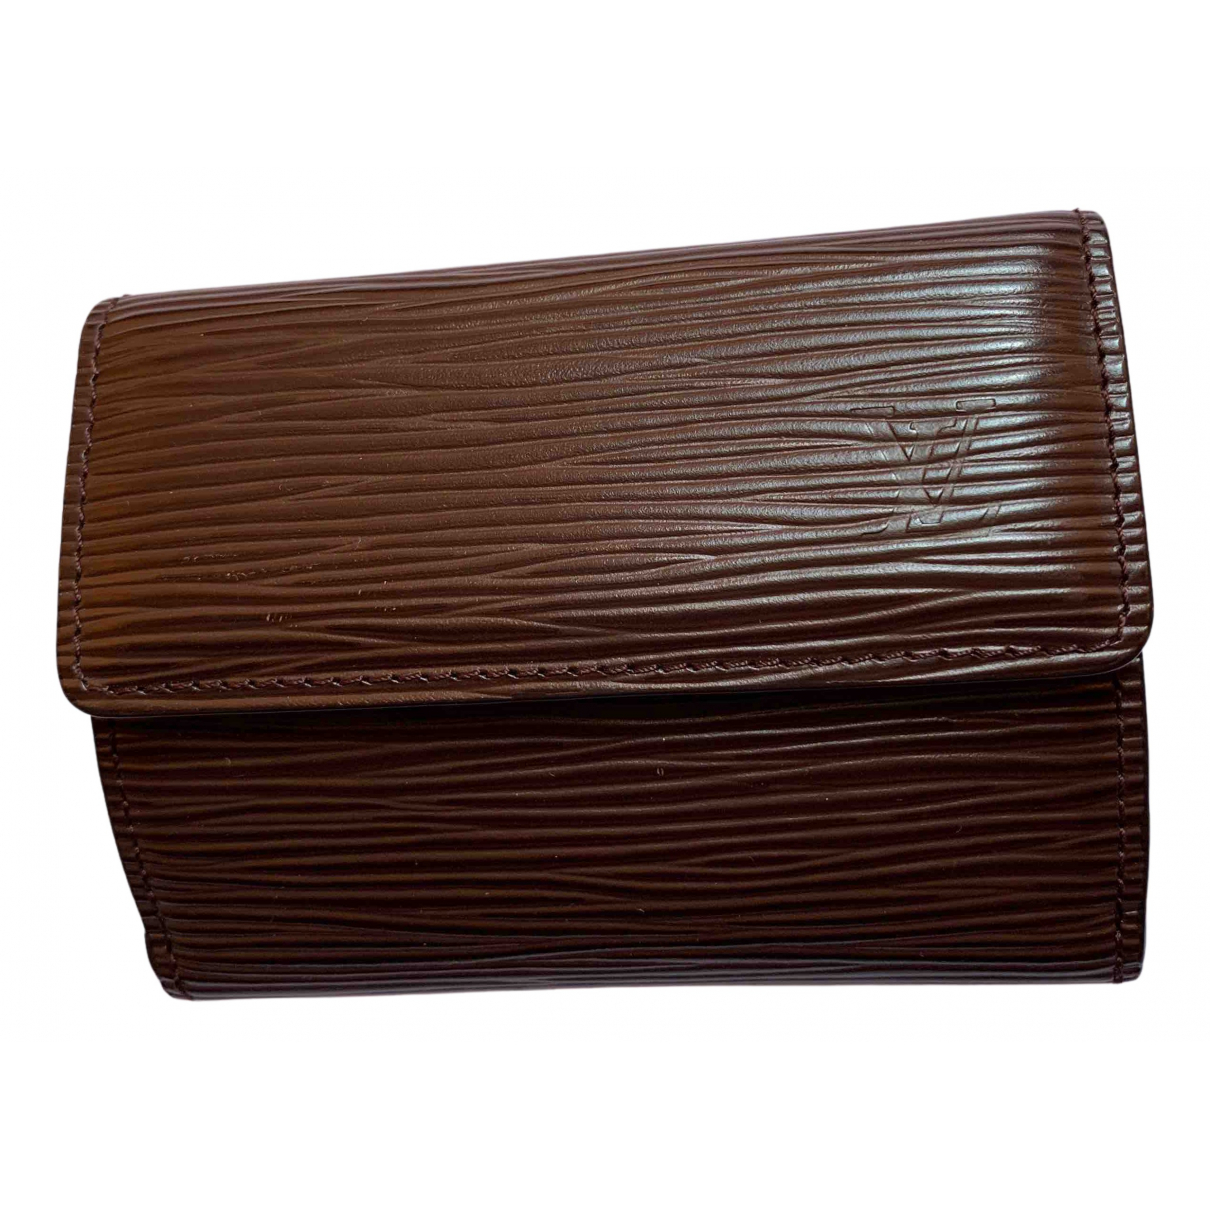 Louis Vuitton N Brown Leather wallet for Women N